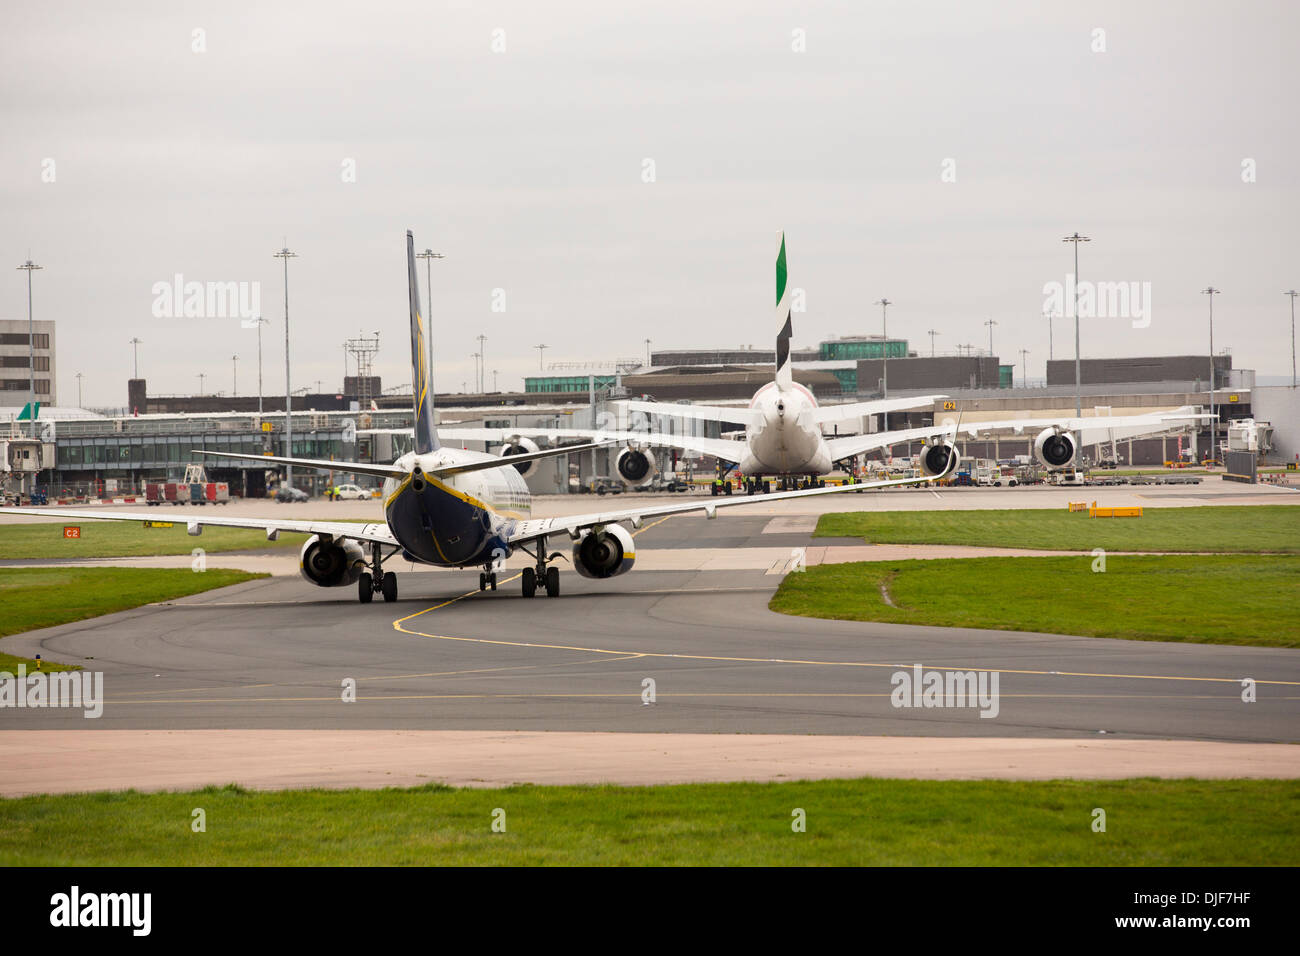 Planes taxiing towards arrivals at Manchester Airport, UK. - Stock Image